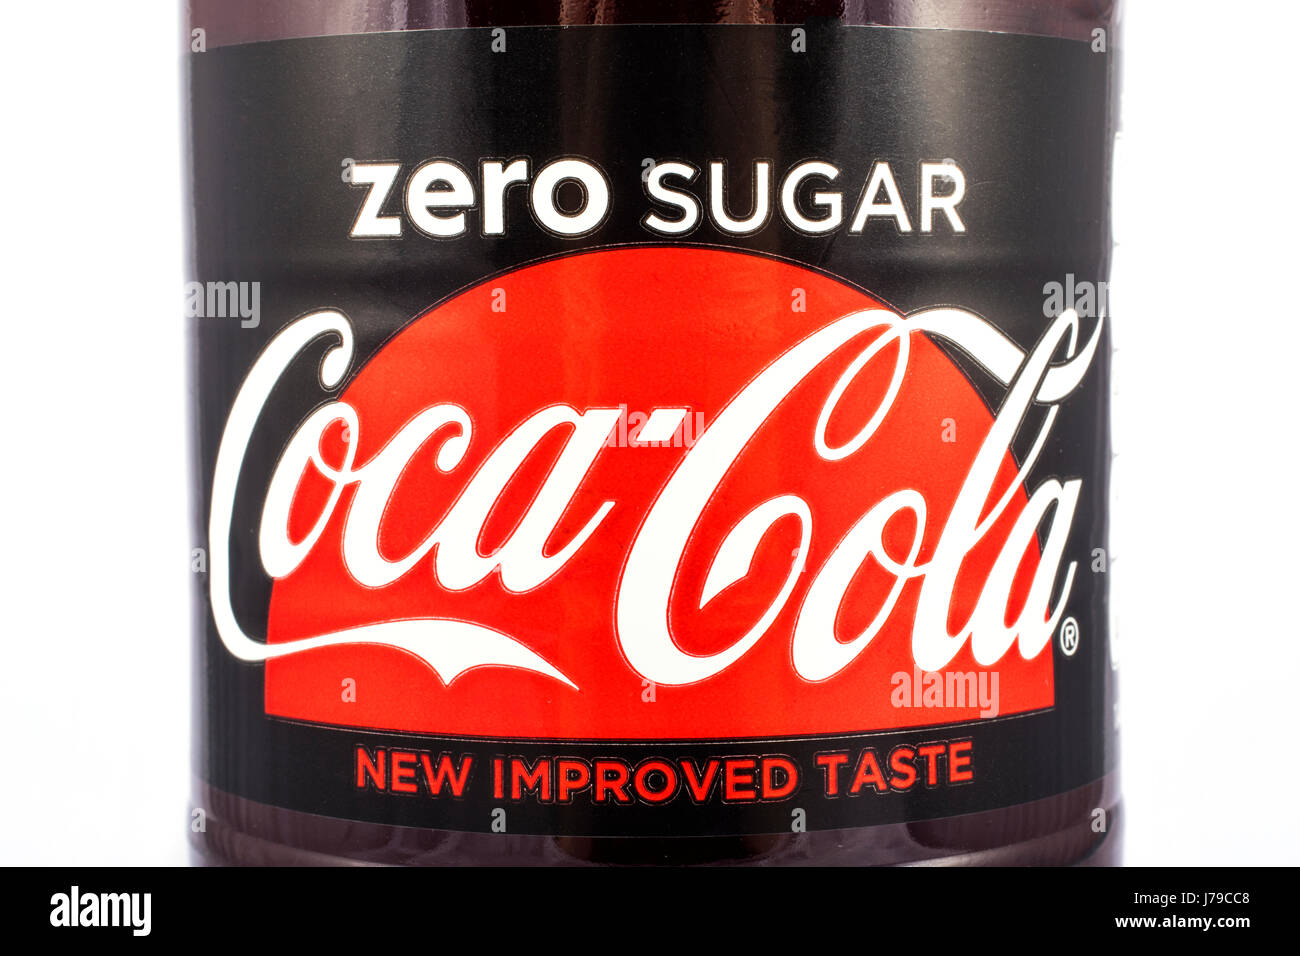 LONDON, UK - MAY 23RD 2017: A close-up shot of the label on a bottle of Zero Sugar Coca Cola, on 23rd May 2017. Stock Photo